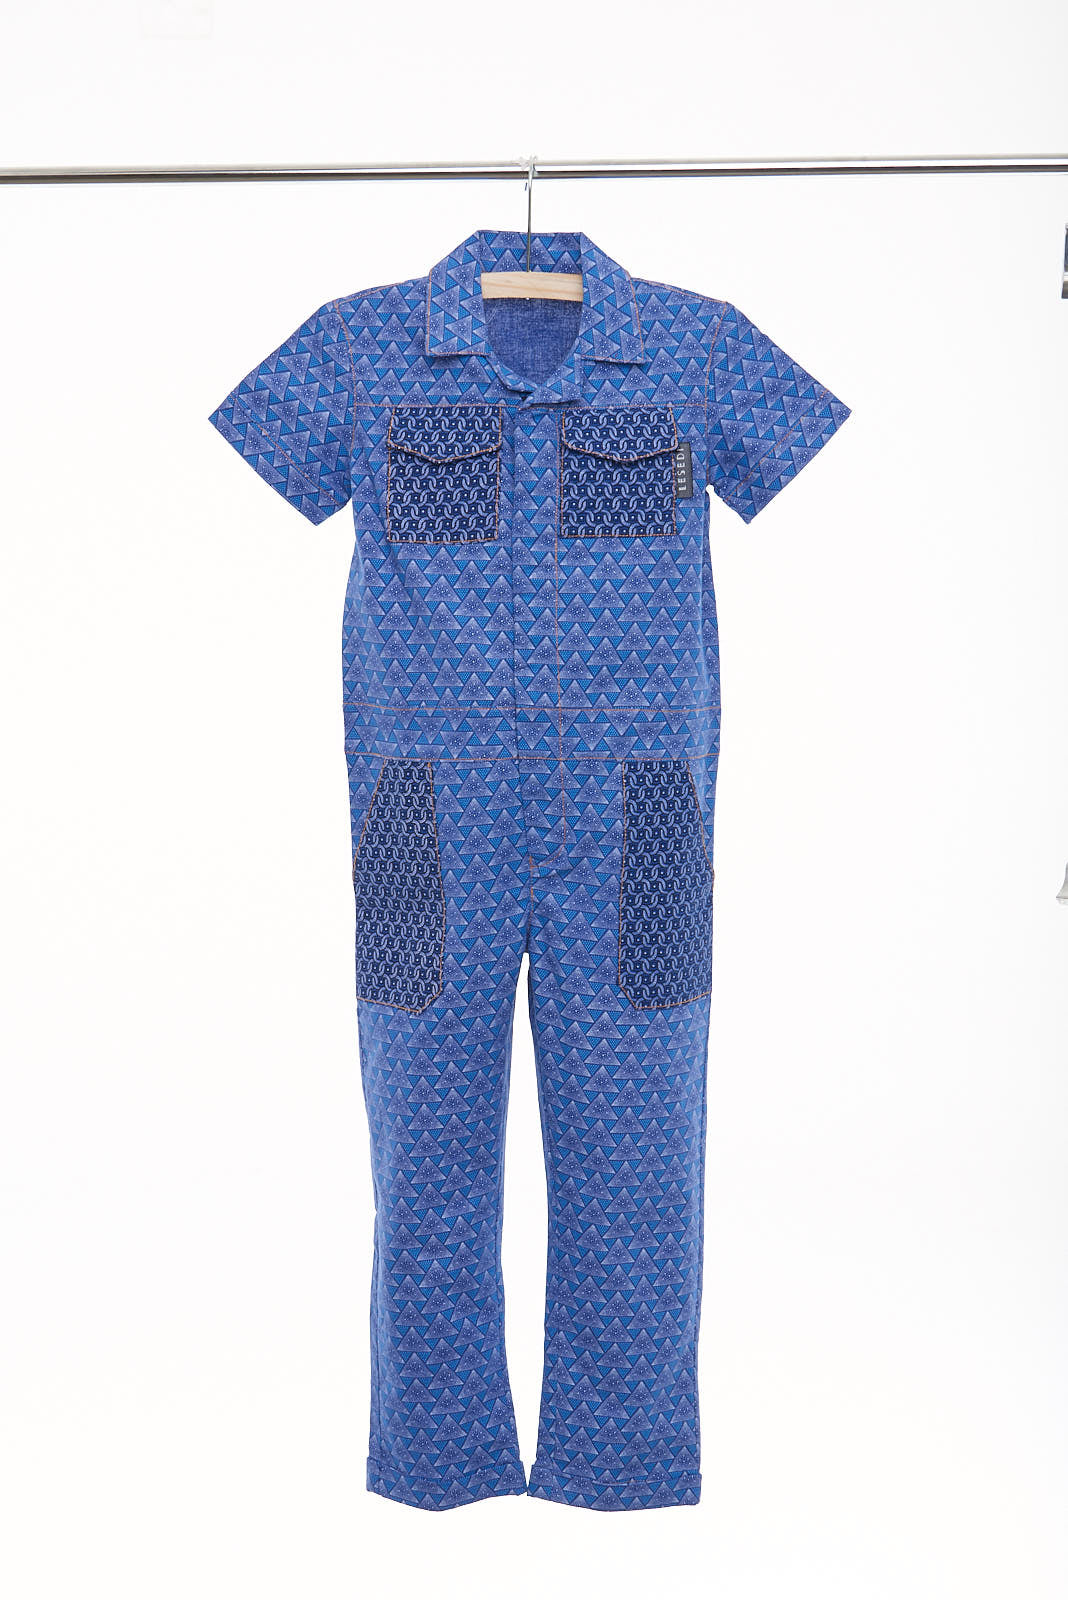 "Boys Short Sleeves Boilersuit ""Nkululo"" - LESEDI"